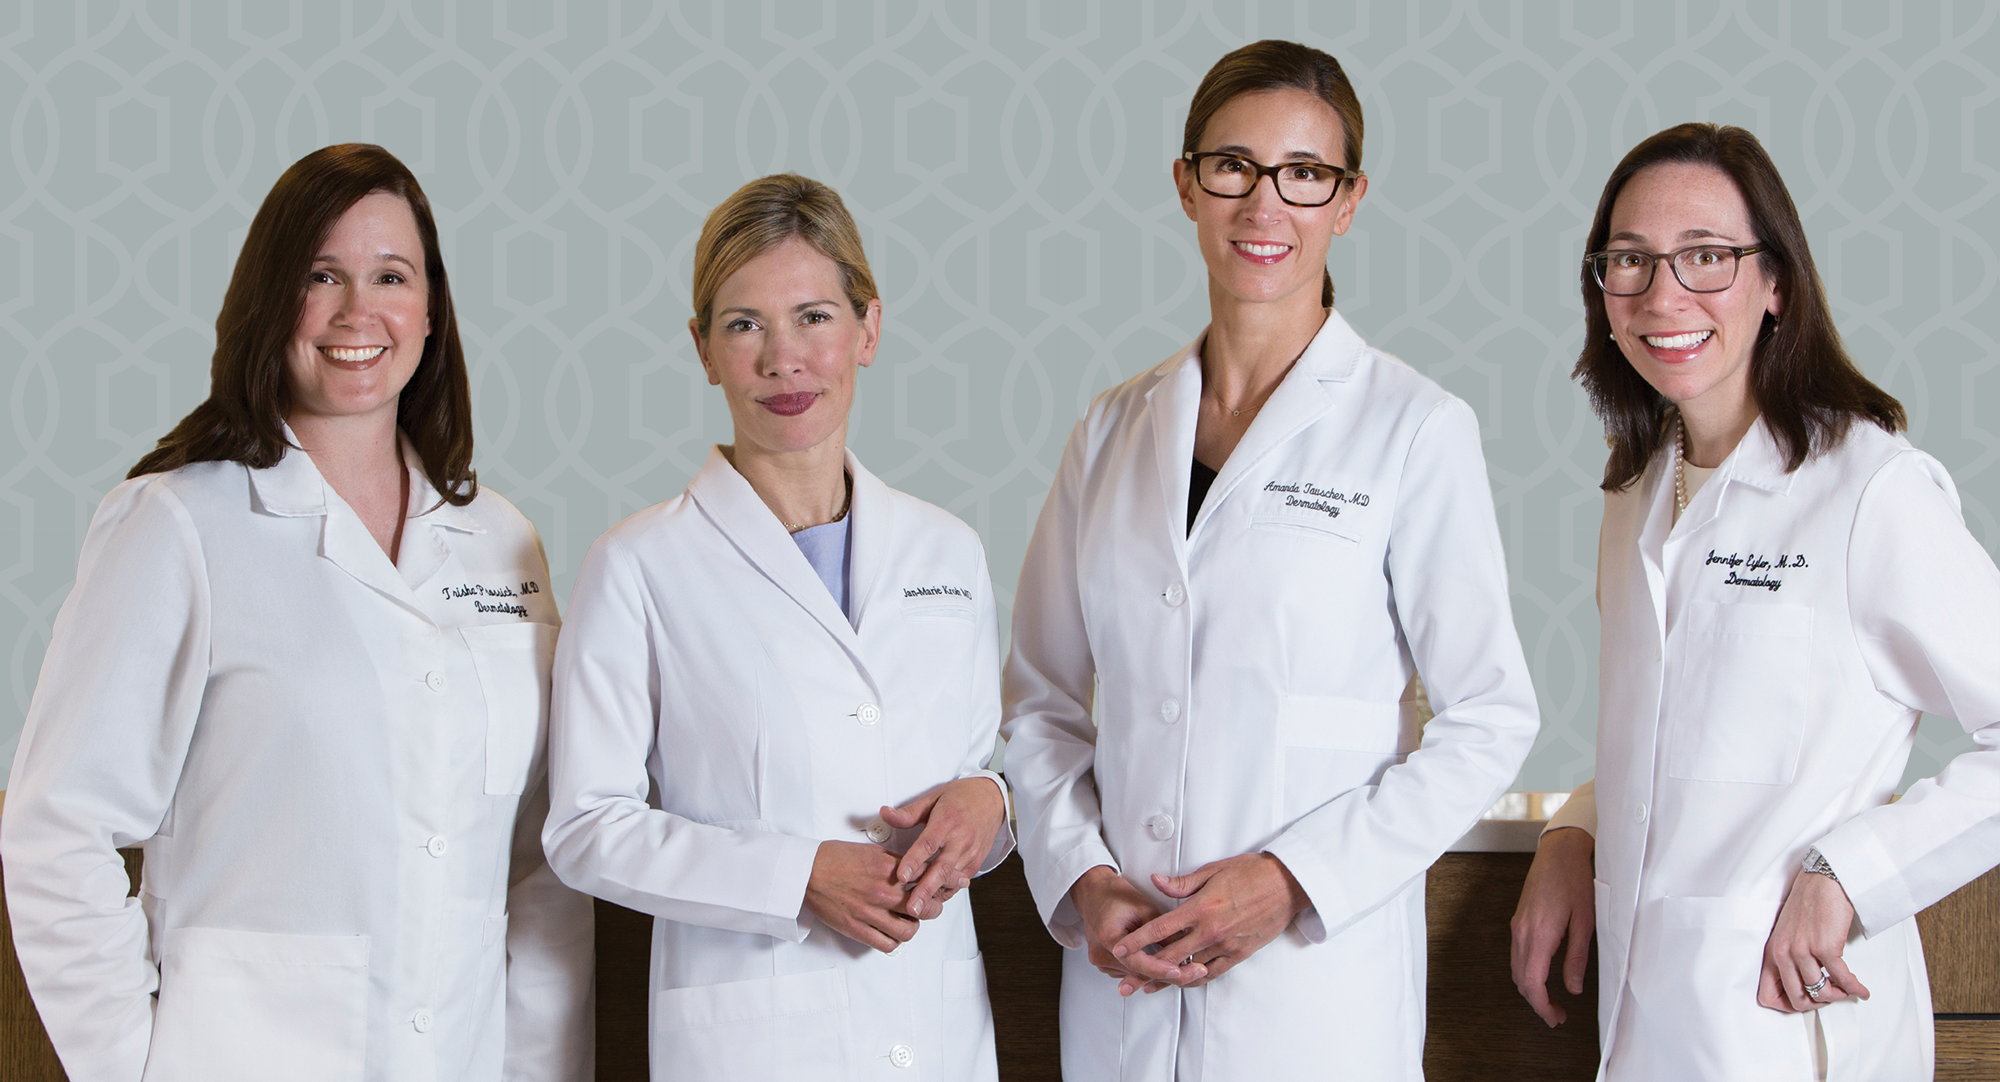 Johnson County Dermatology • Helpful Resources and Skincare Tips